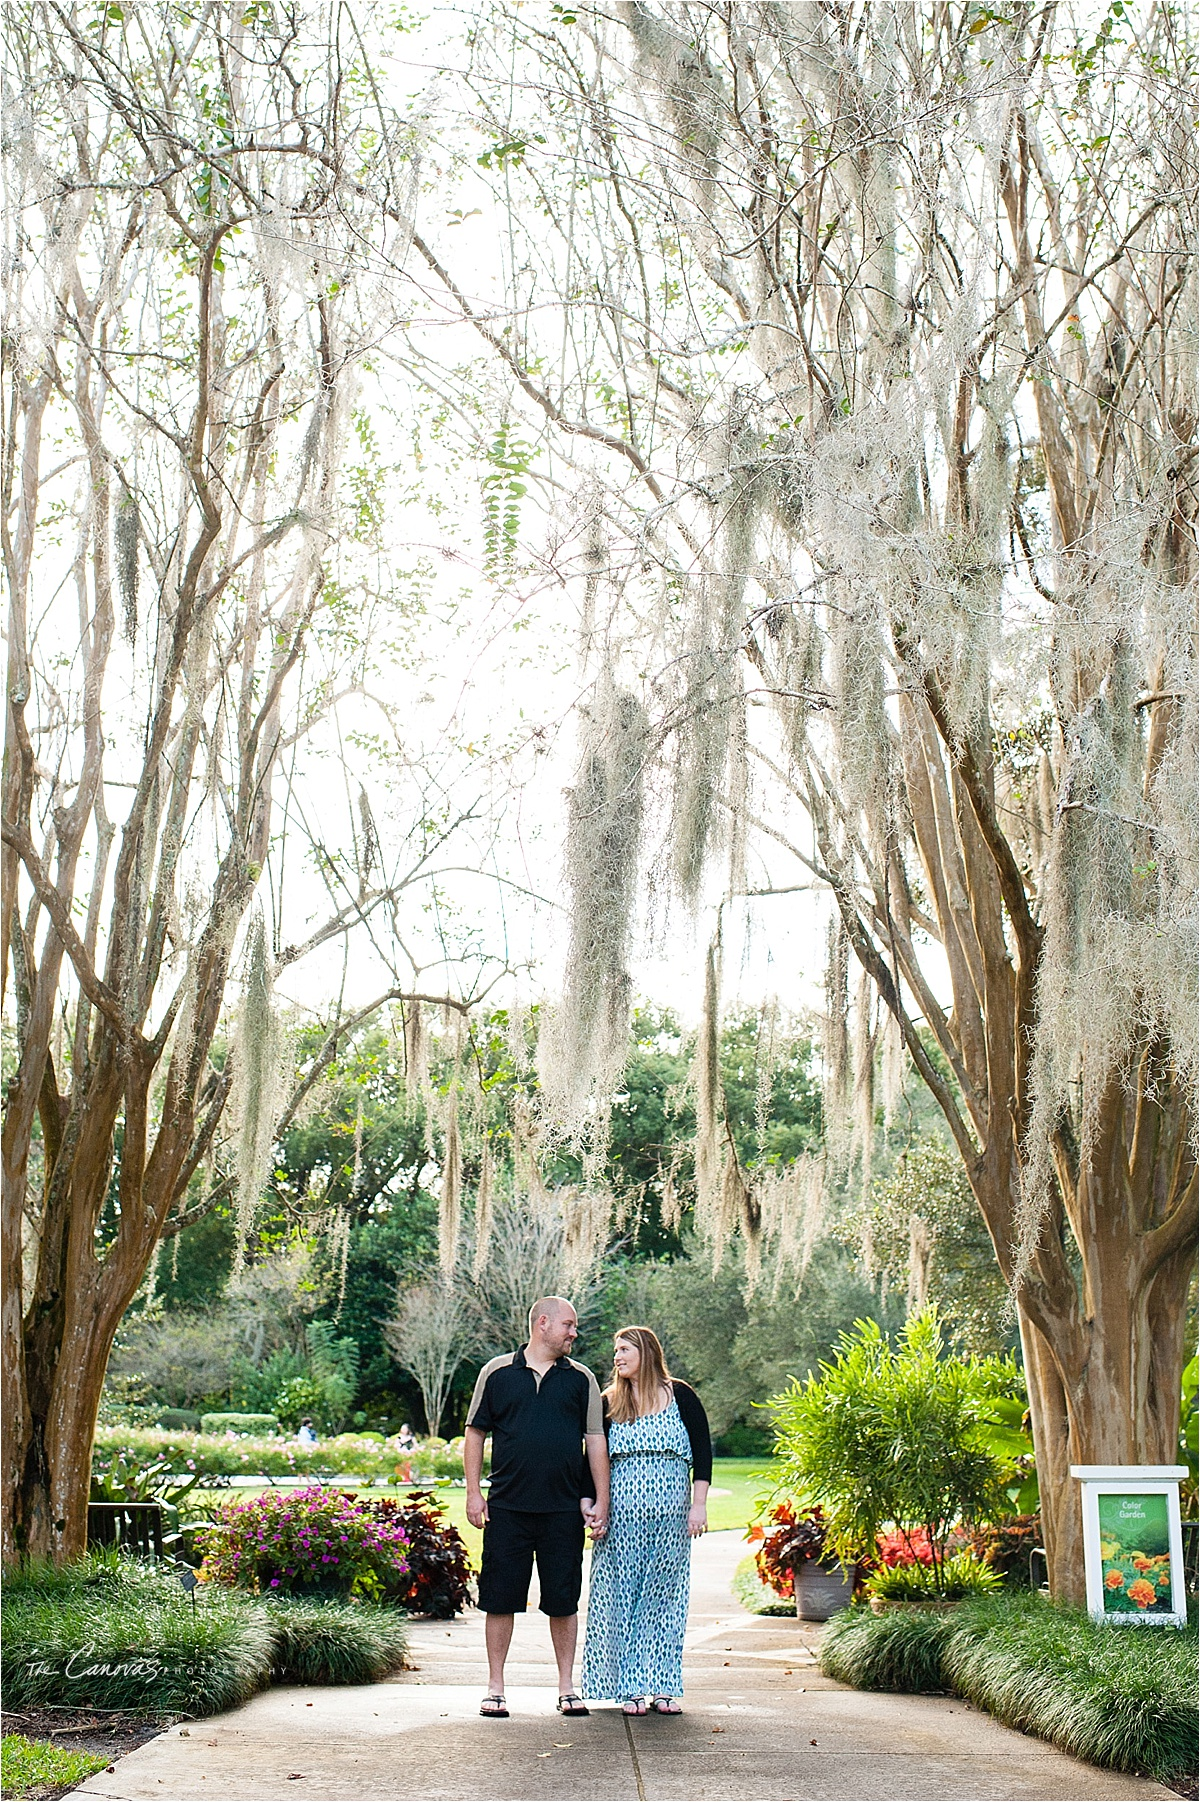 Engagement Photography | Leu Gardens Orlando, Florida